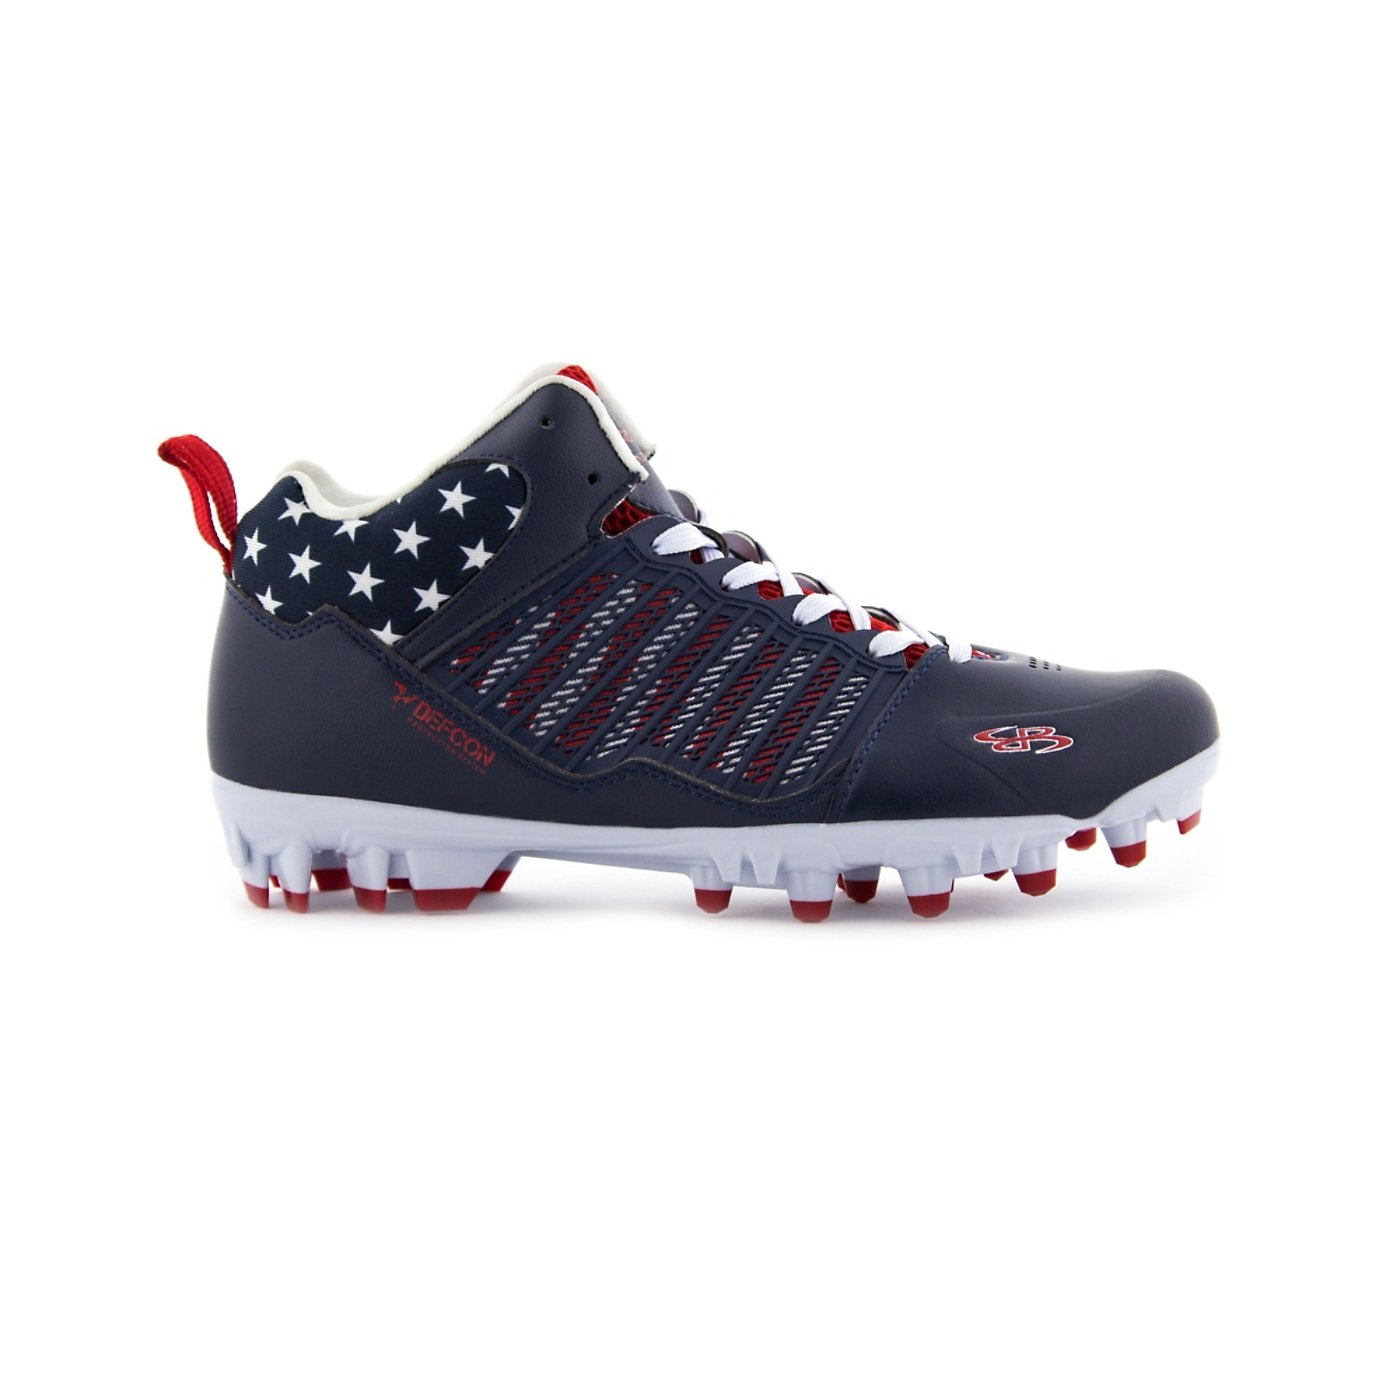 Boomah Men's Ikhana Molded USA Lacrosse Cleat Mid Navy/Red/White - Size 8.5 by Boombah